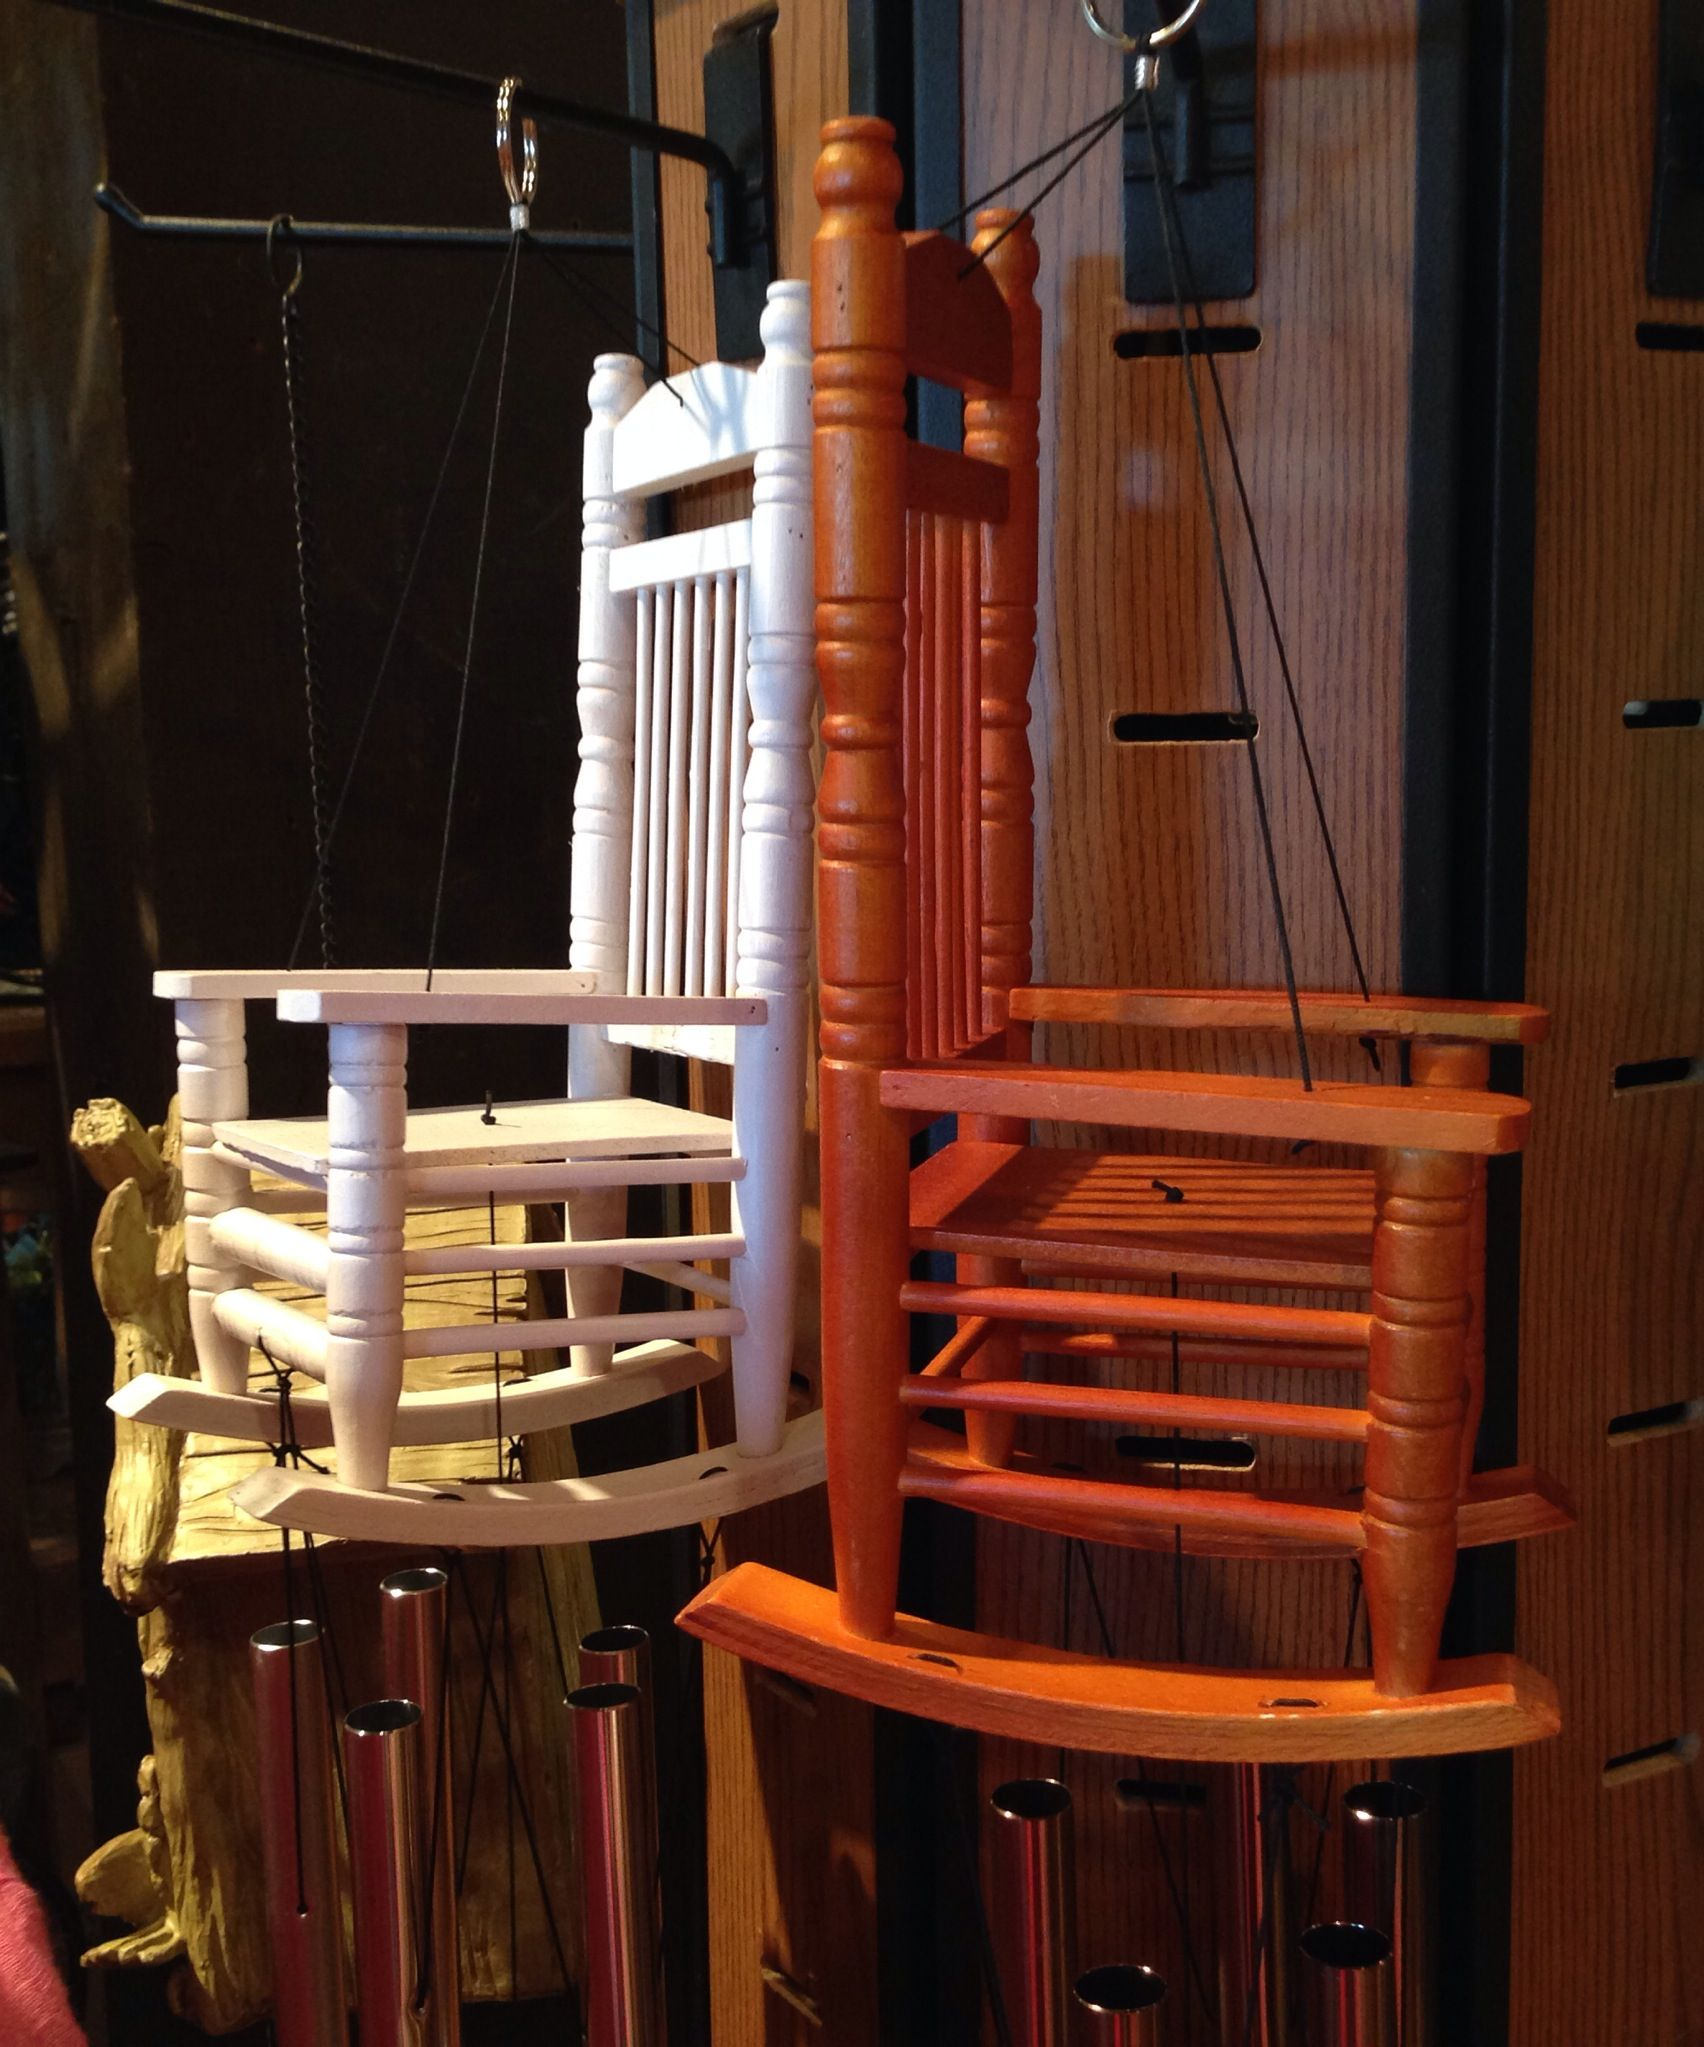 Rocking Chair Wind Chimes Cracker Barrel Cracker Barrel Old Country Store Pinterest